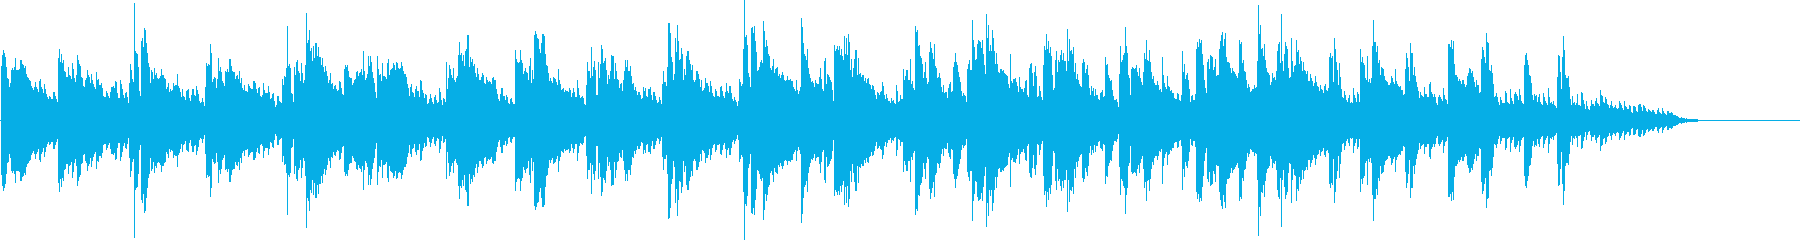 Serious and floating computer music's reproduced waveform